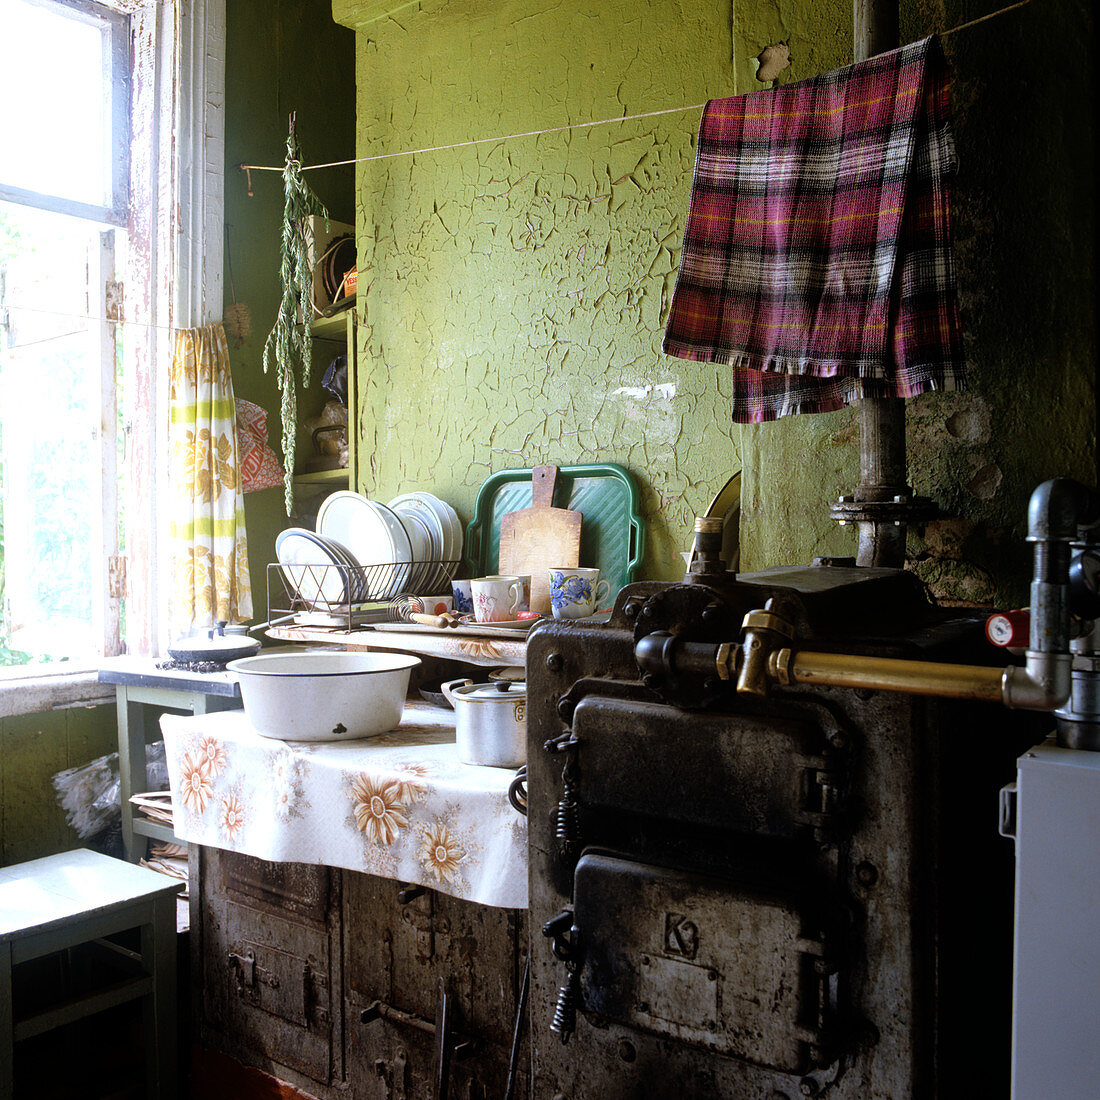 Tea towel hung above rustic, grimy stove to dry